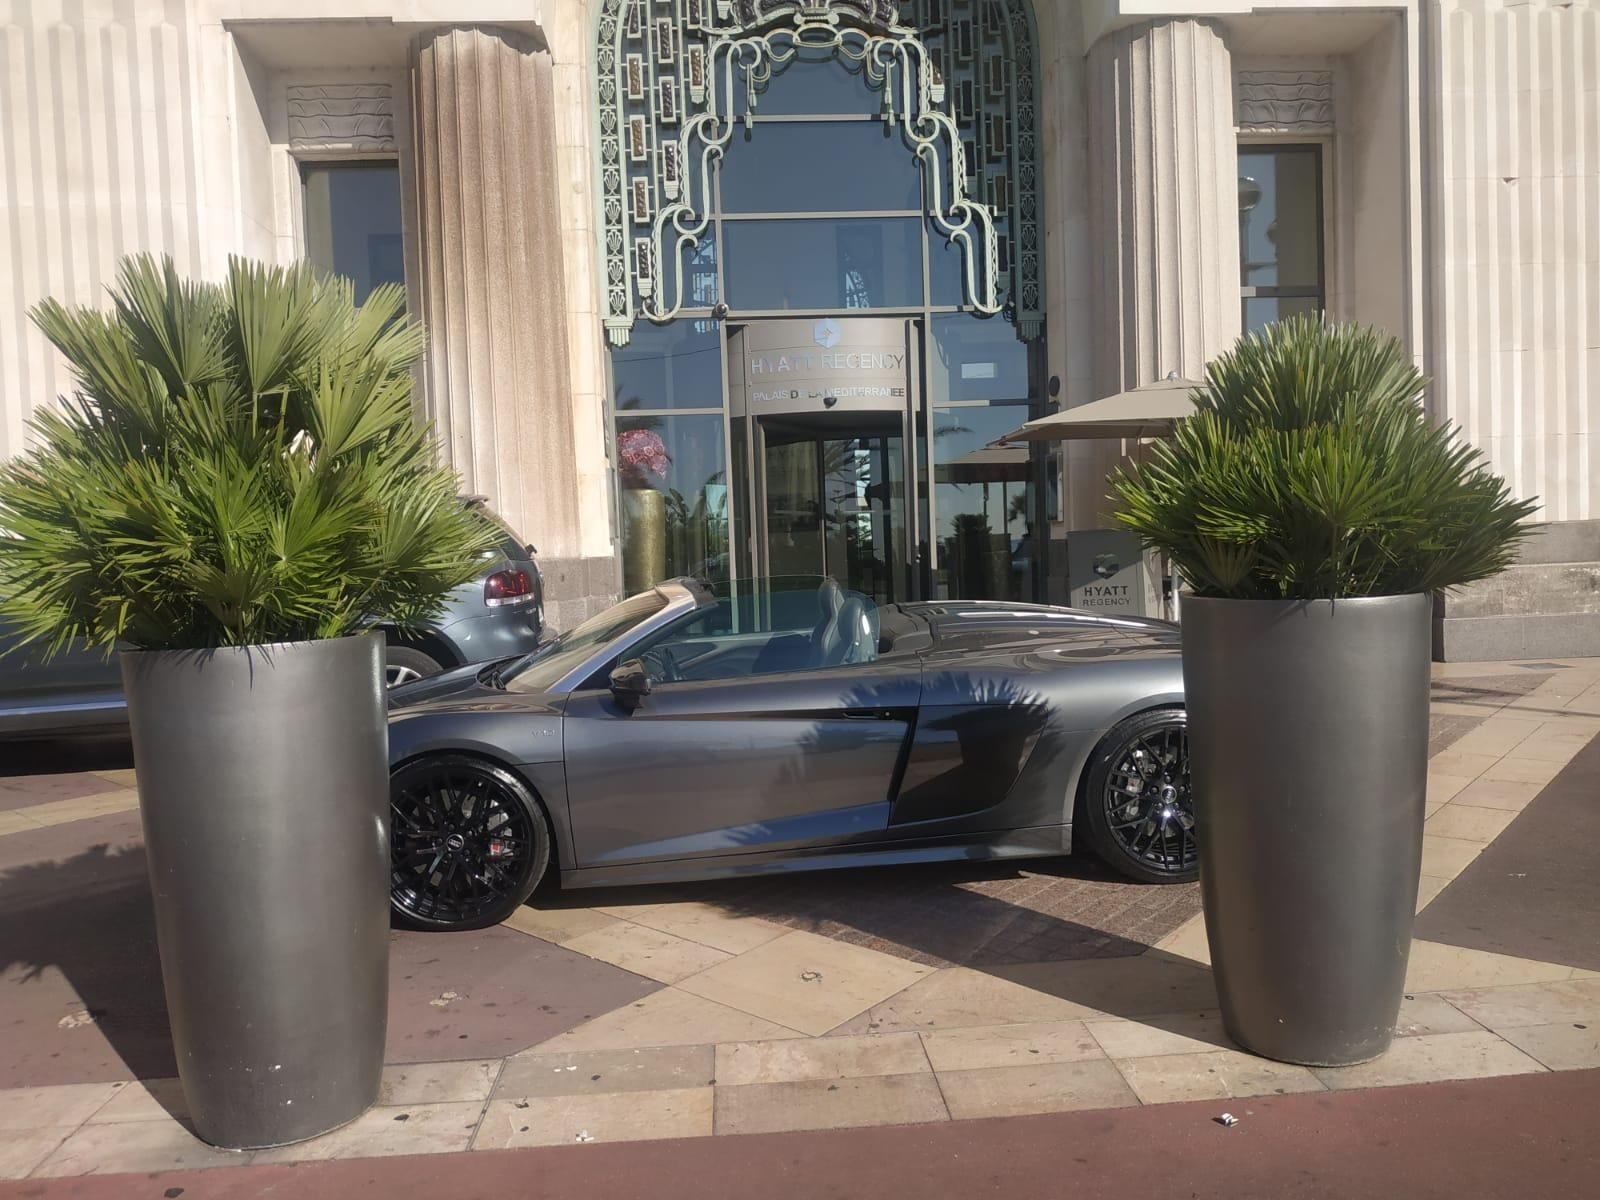 Enjoy The Beauty Of Cote D Azur In The Lap Of Luxury Rent Luxury Cars Sportscars Luxurycars Carrental Rentacar Fran Audi Europe Car Audi A3 Cabriolet